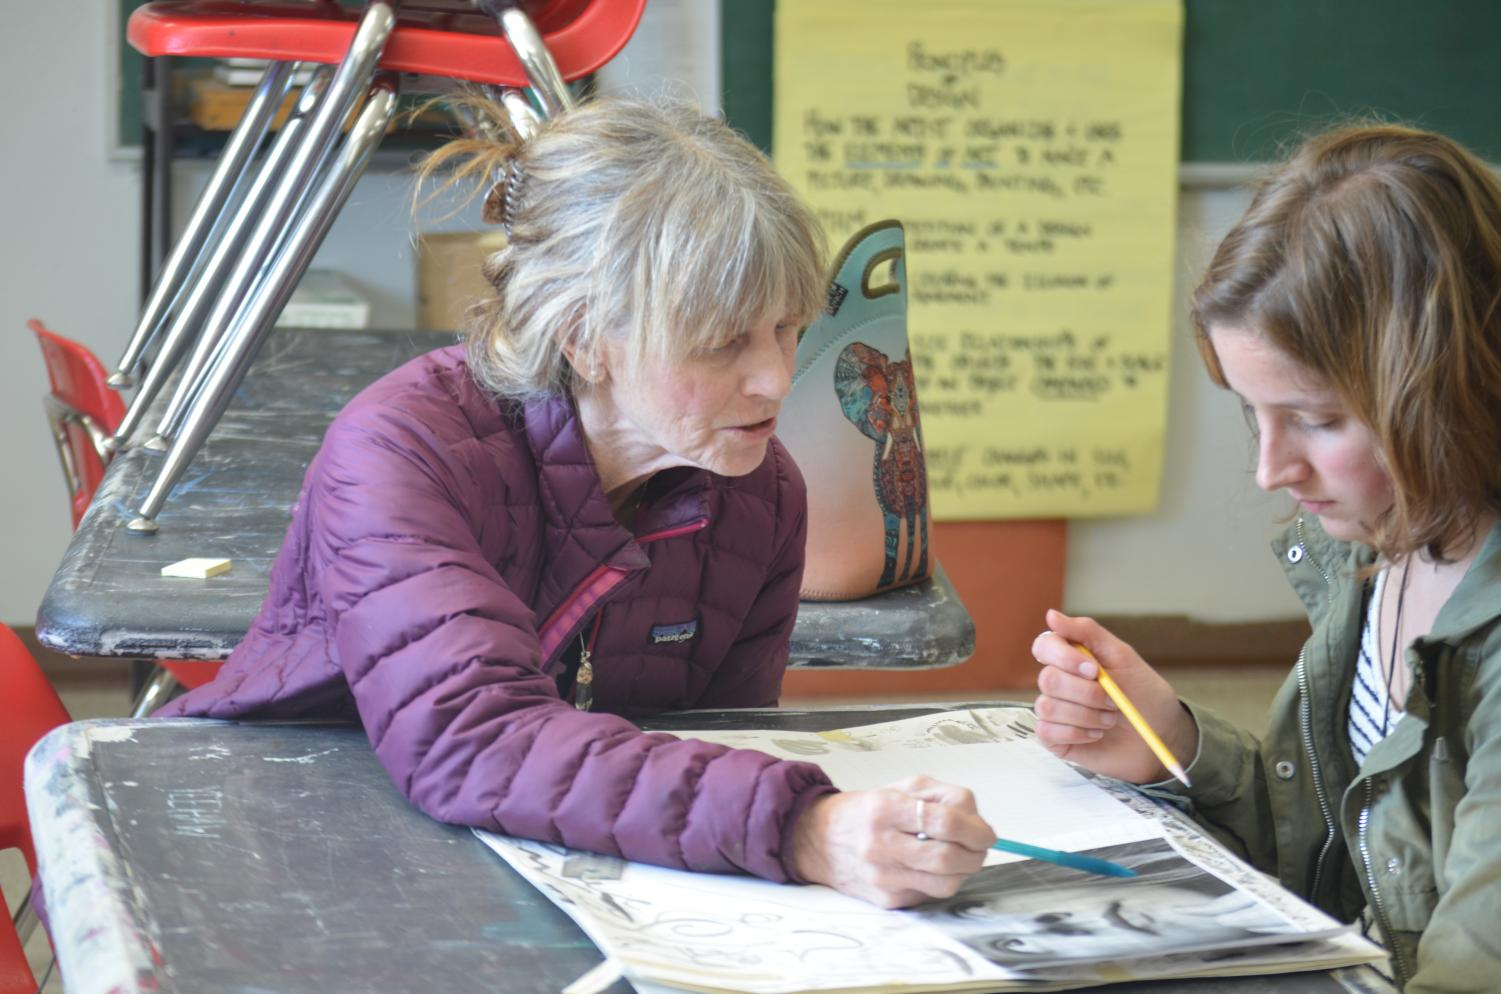 Guthrie gives one of her advanced students assistance on an art project.  Long time art teacher Heather Guthrie gives pointers to one of her advanced students, senior Chloe Braedt, as she works on a project for the class